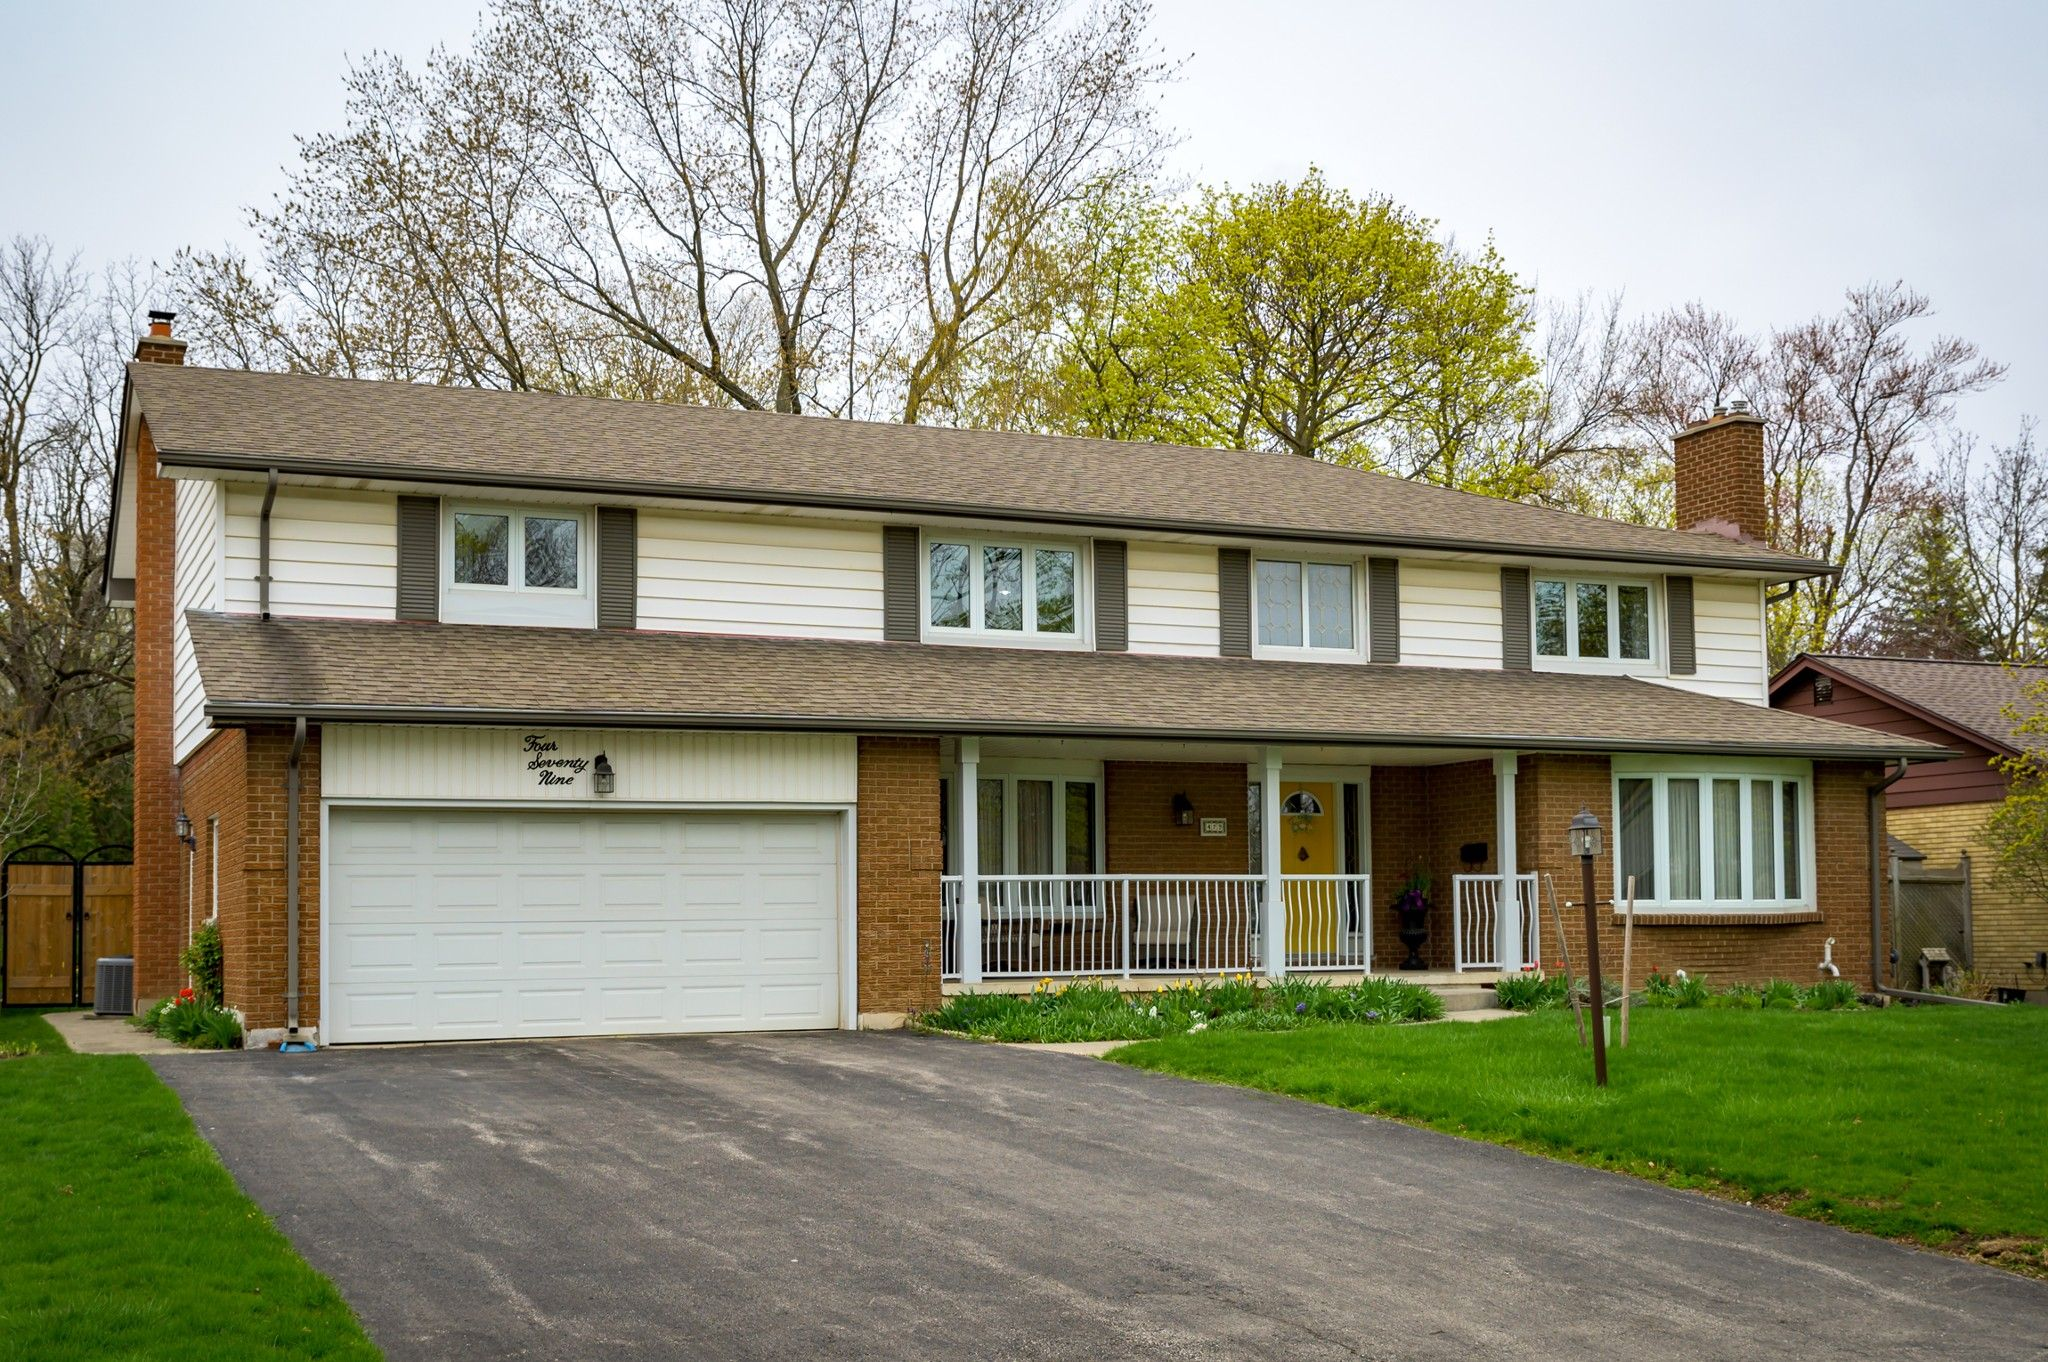 Main Photo: 479 Huntingdon Drive in London: Residential for sale : MLS®# 40101021